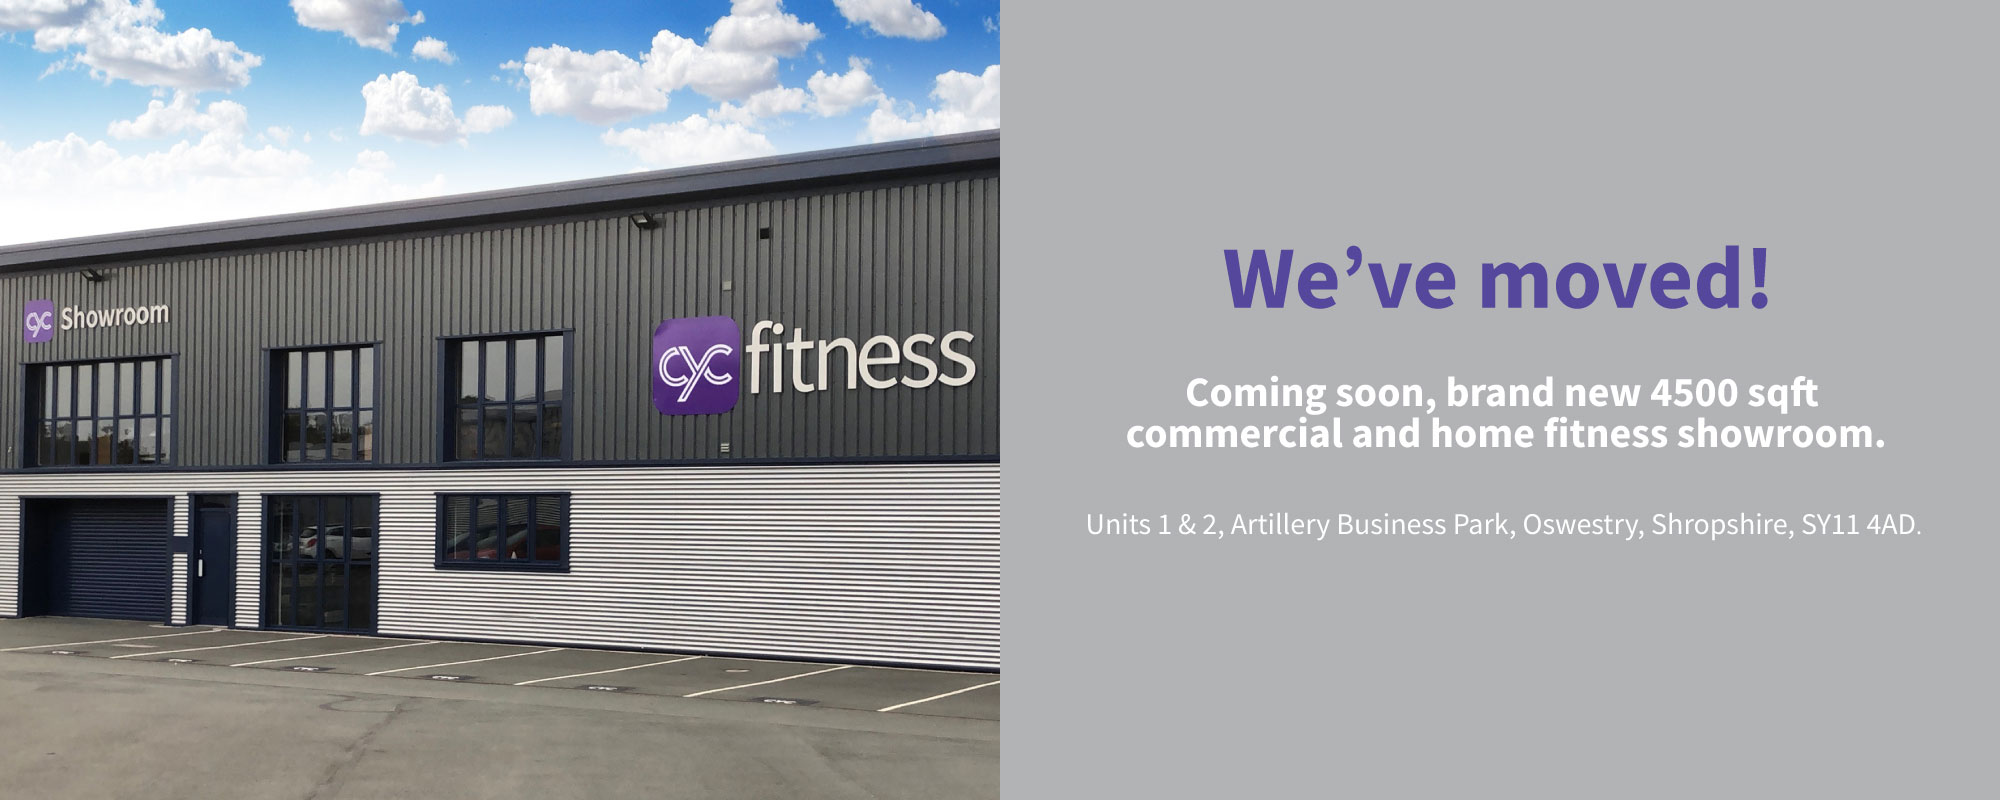 We've moved! Coming soon, brand new 4500 sqft commercial and home fitness showroom. Units 1&2, Artillery Business Park, Oswestry, Shropshire, SY11 4AD